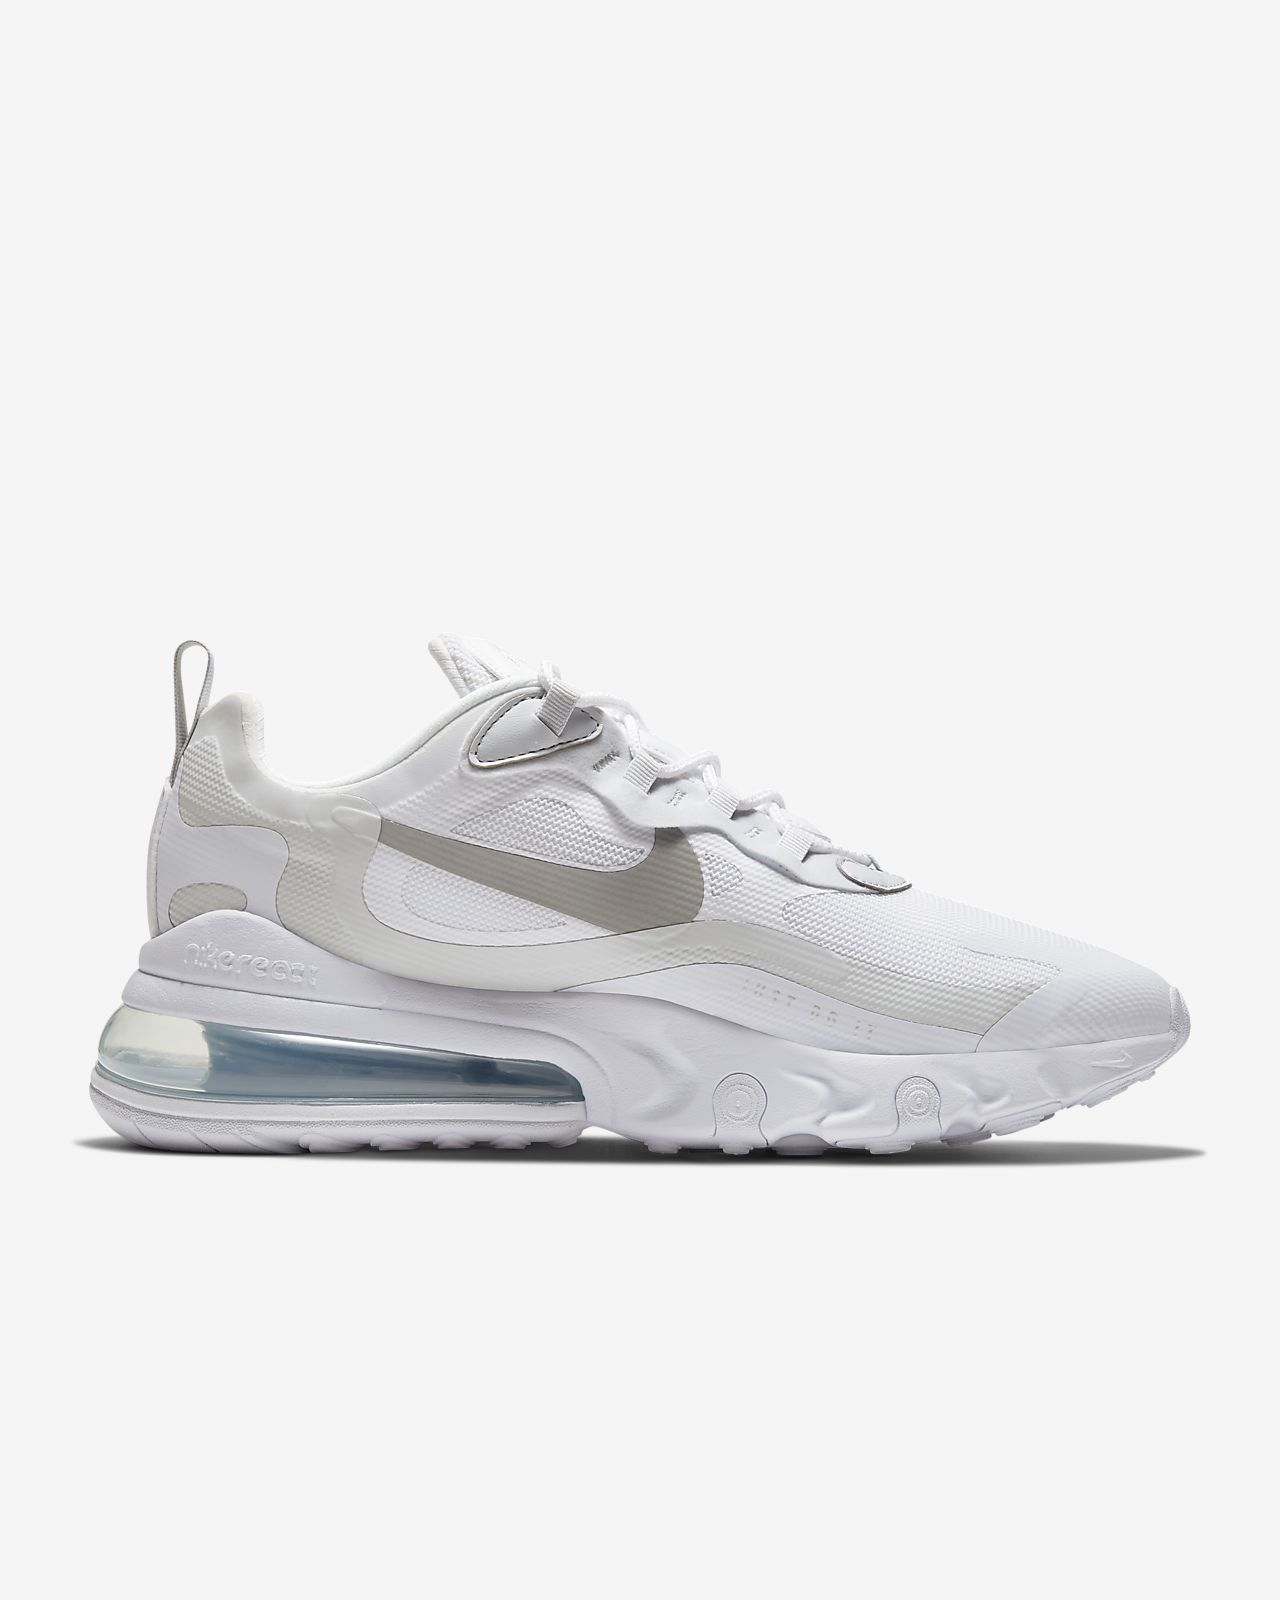 111 Best Air Max 270 images | Air max 270, Air max, Nike air max